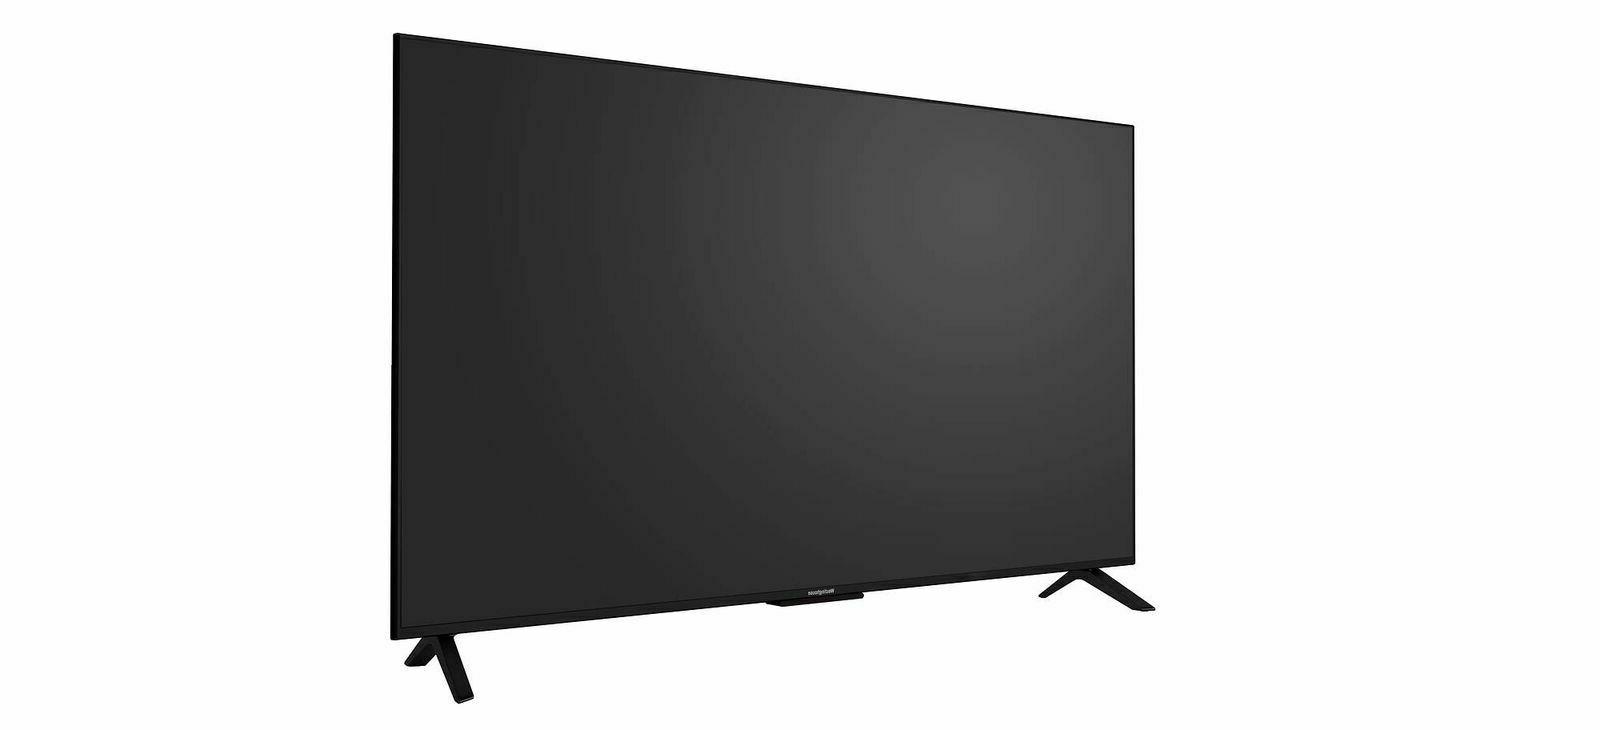 Westinghouse smart tv 2160p HD UHD WE50UJ4018 NEW